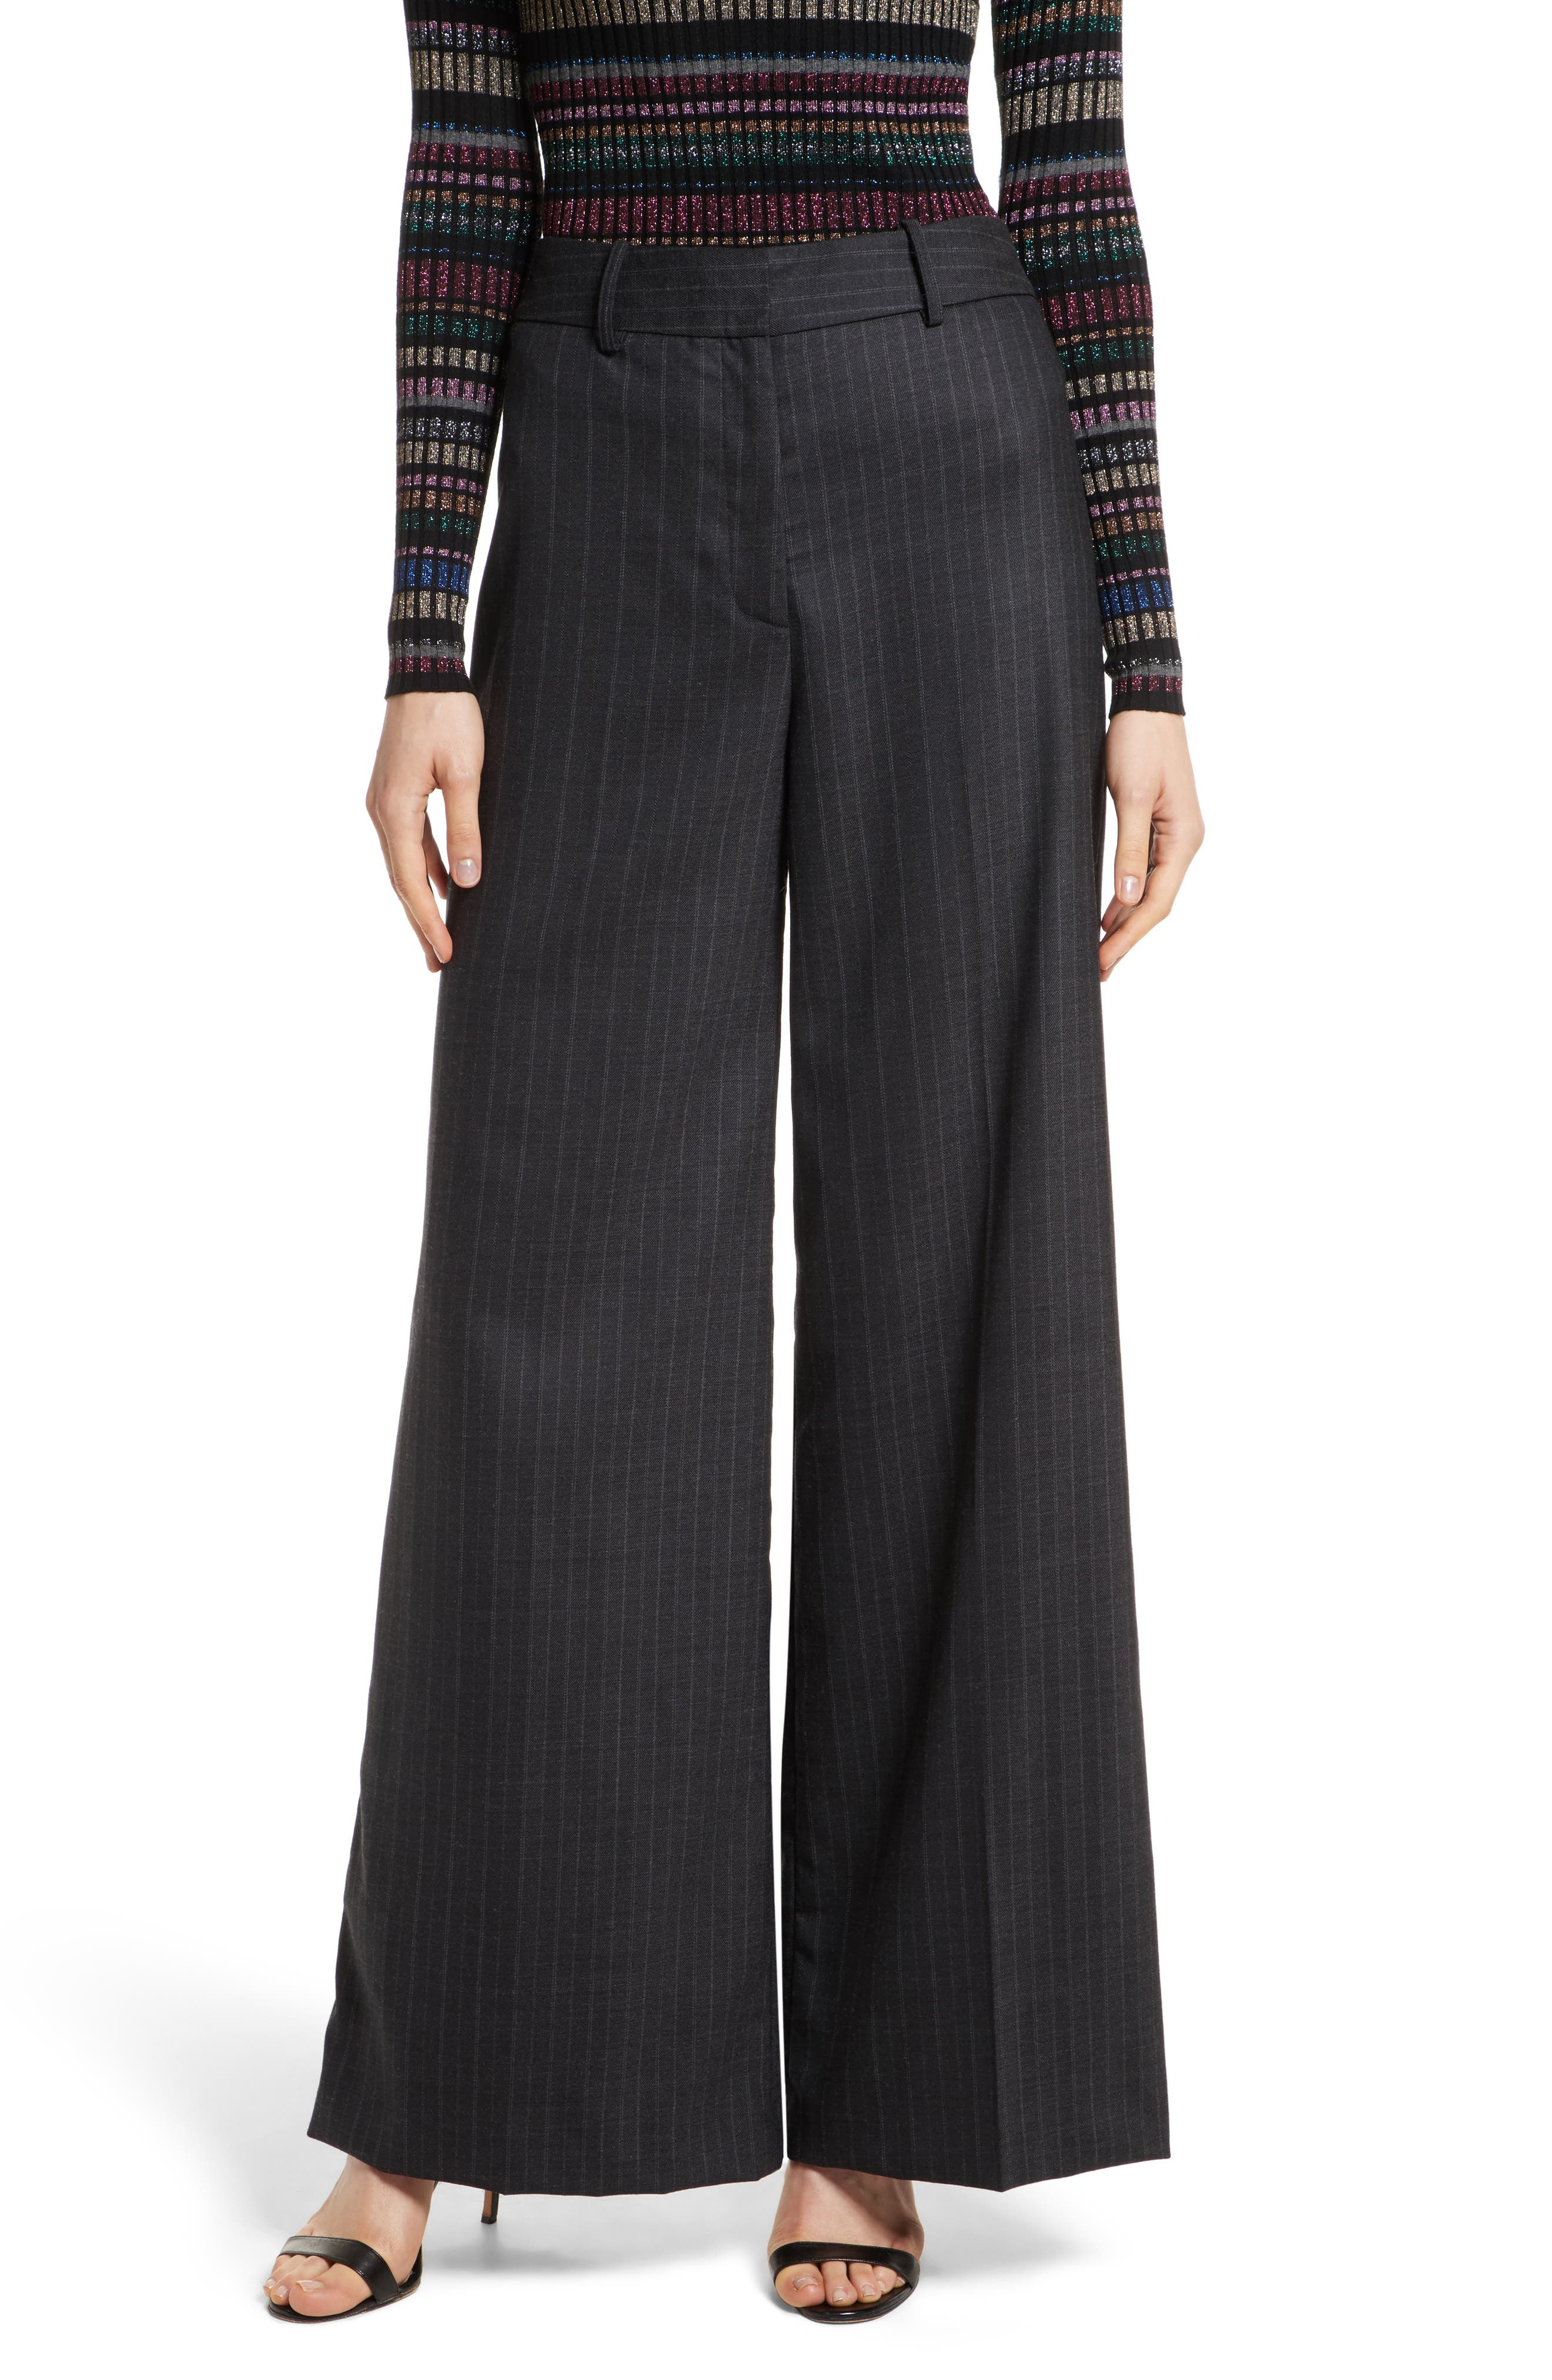 Sia Pinstripe Italian Stretch Wool Trousers,                             Main thumbnail 1, color,